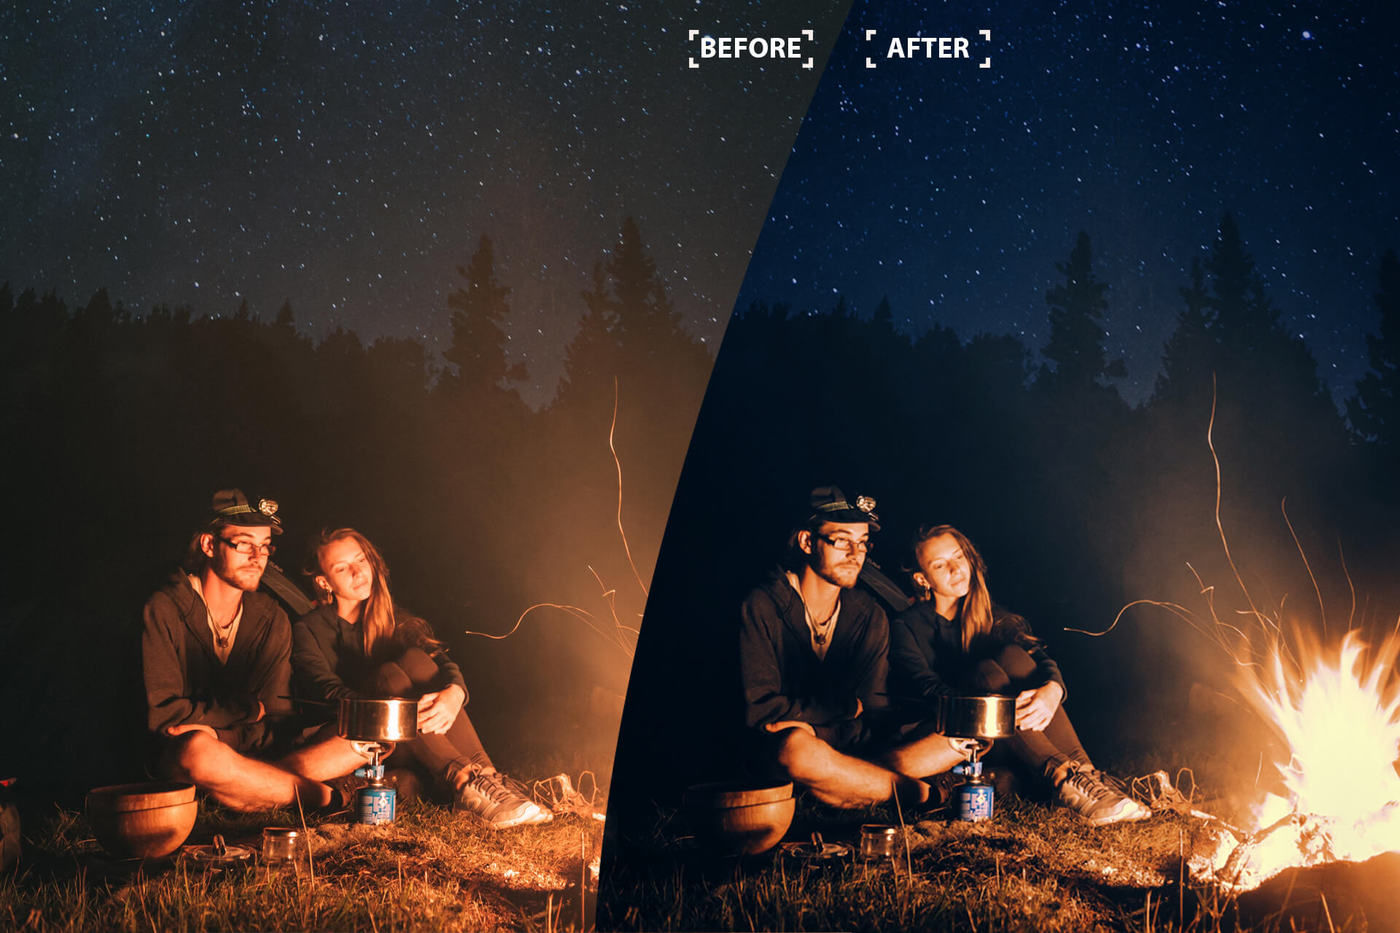 Cinematic Color Grading 01 Premium Photoshop Actions By 3Motional